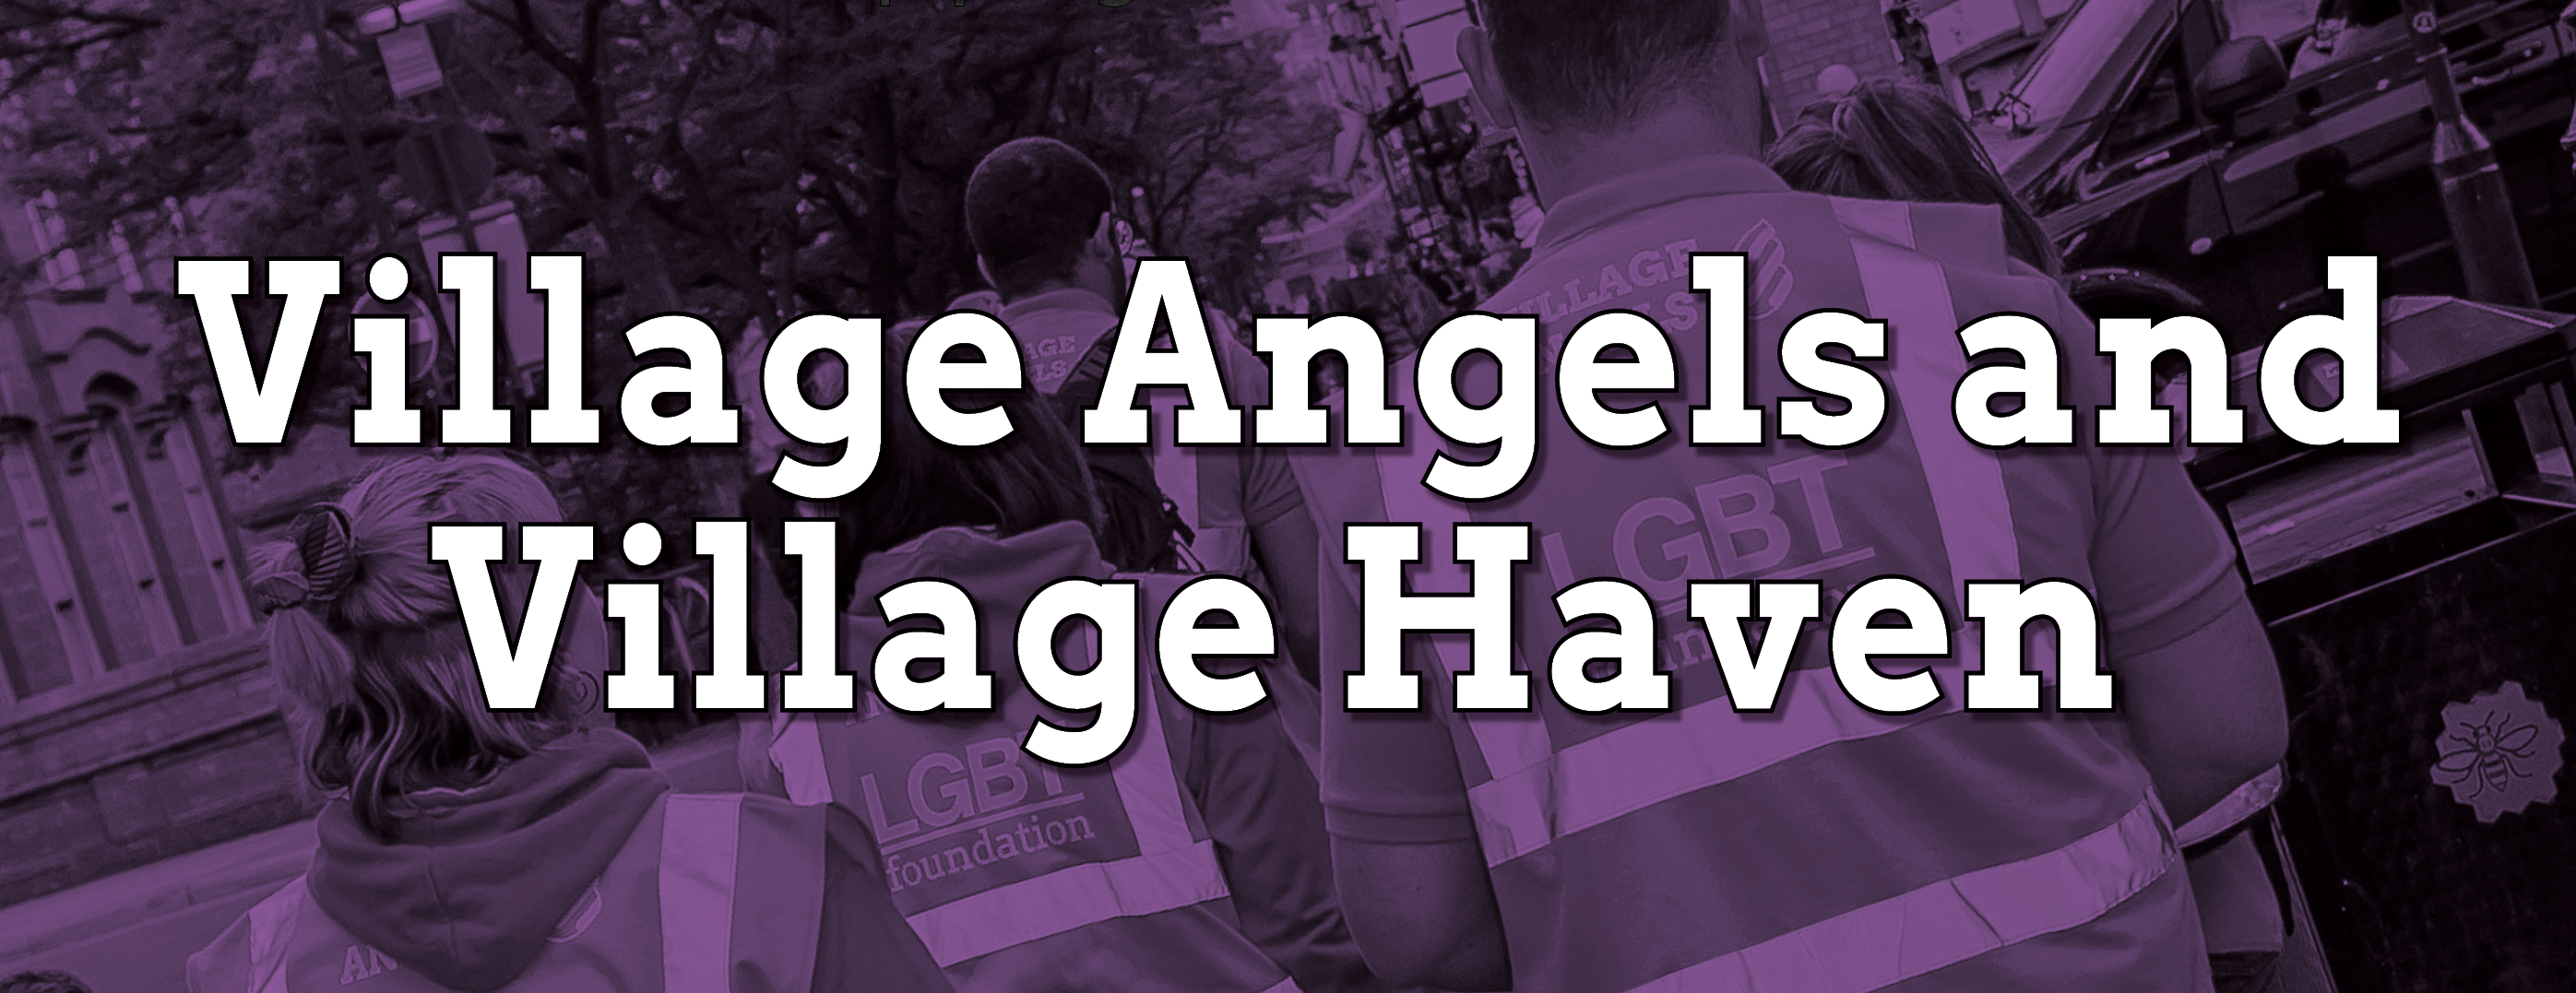 Village Angels / Village Haven